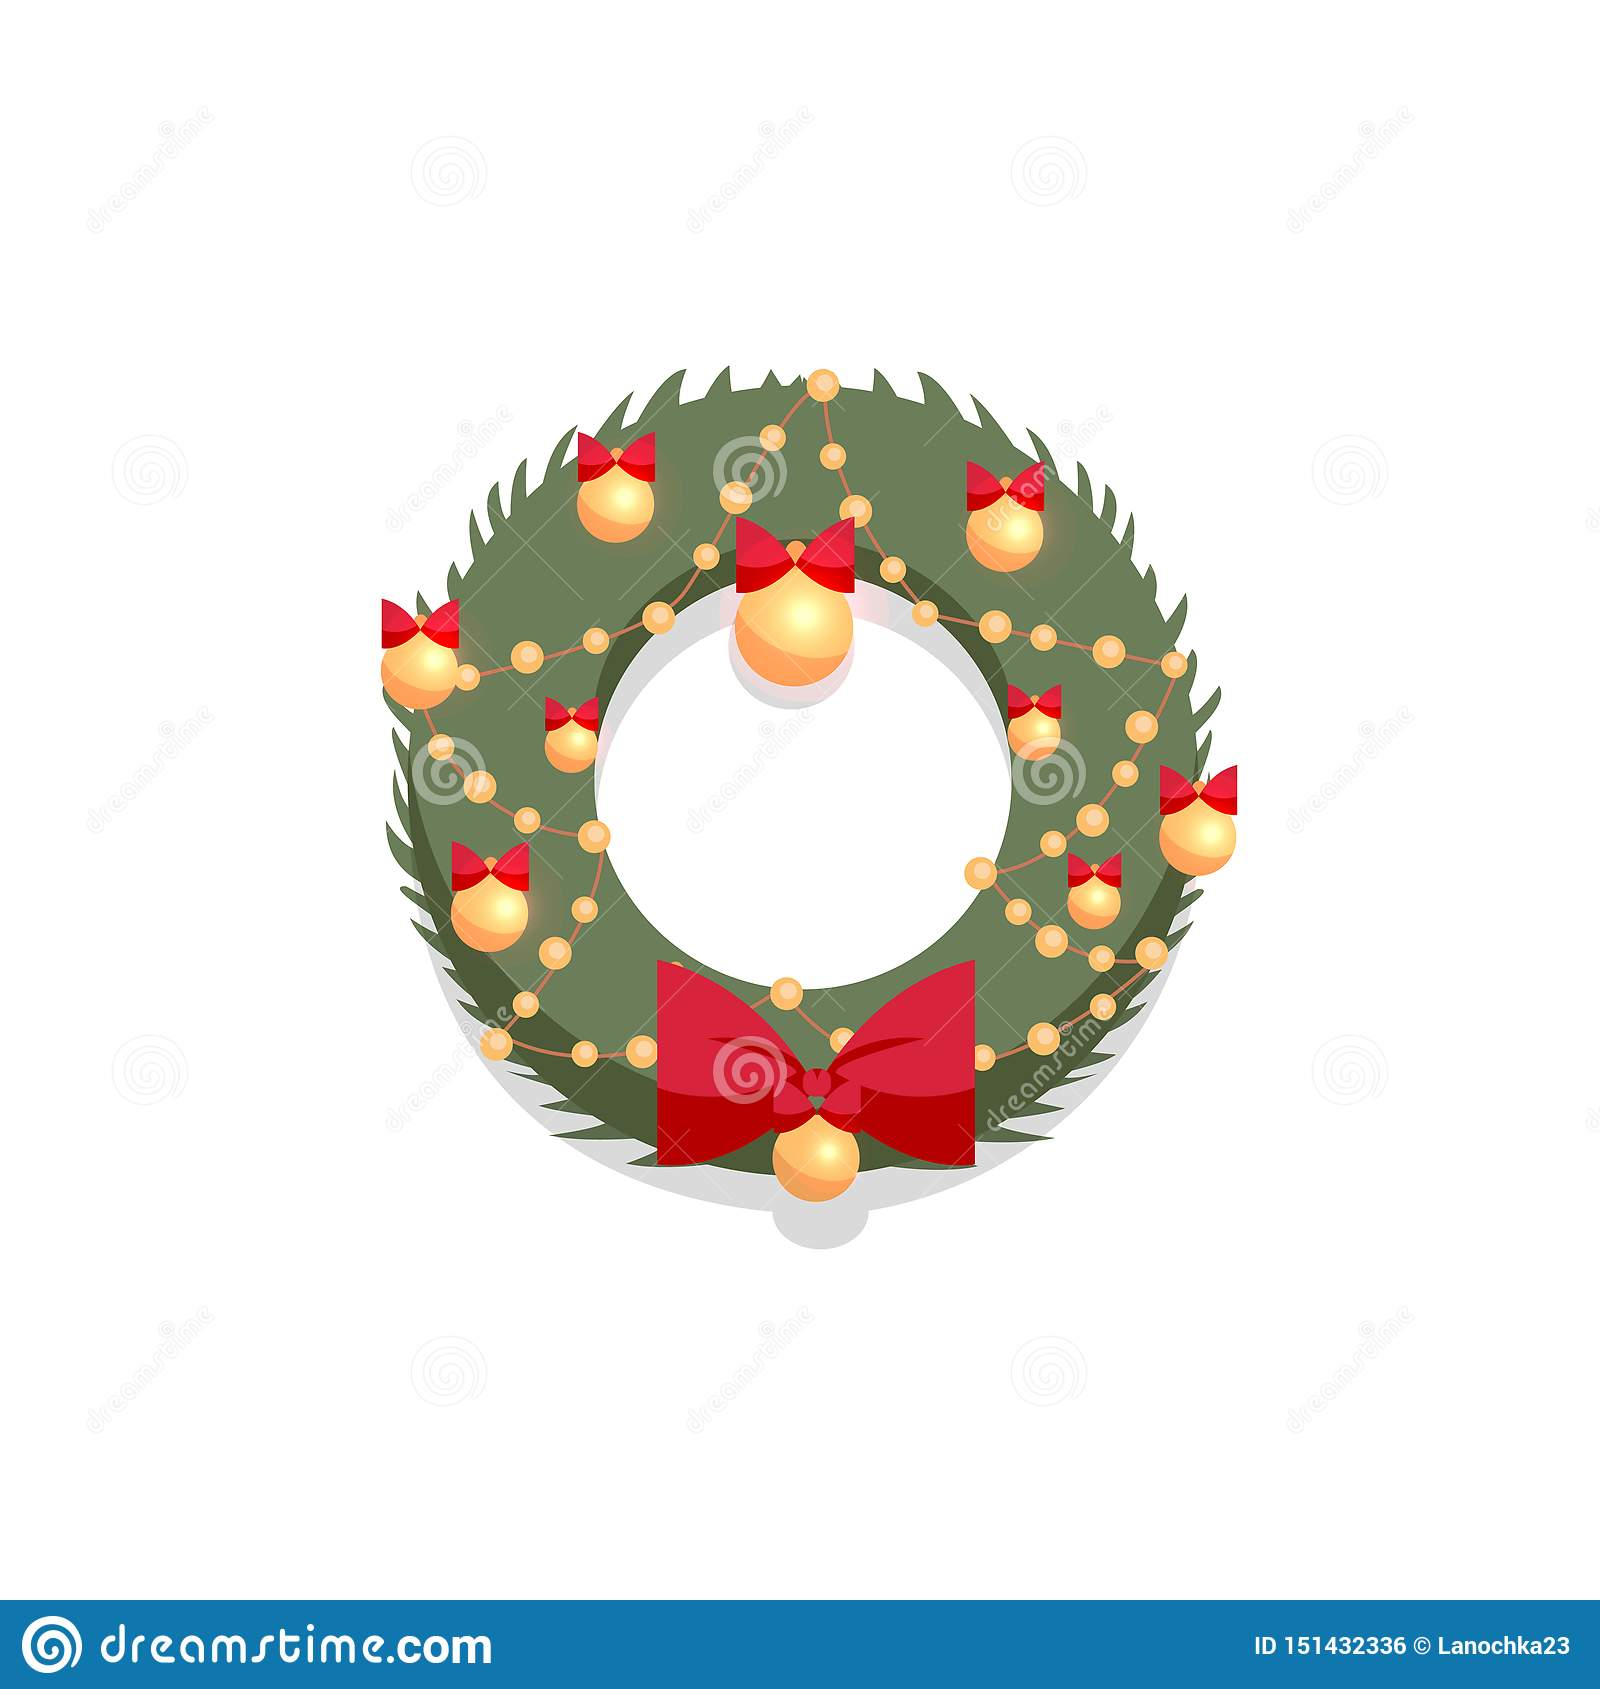 Christmas green wreath decorated by red bow and golden balls on a white background. Flat cartoon style vector illustration. New